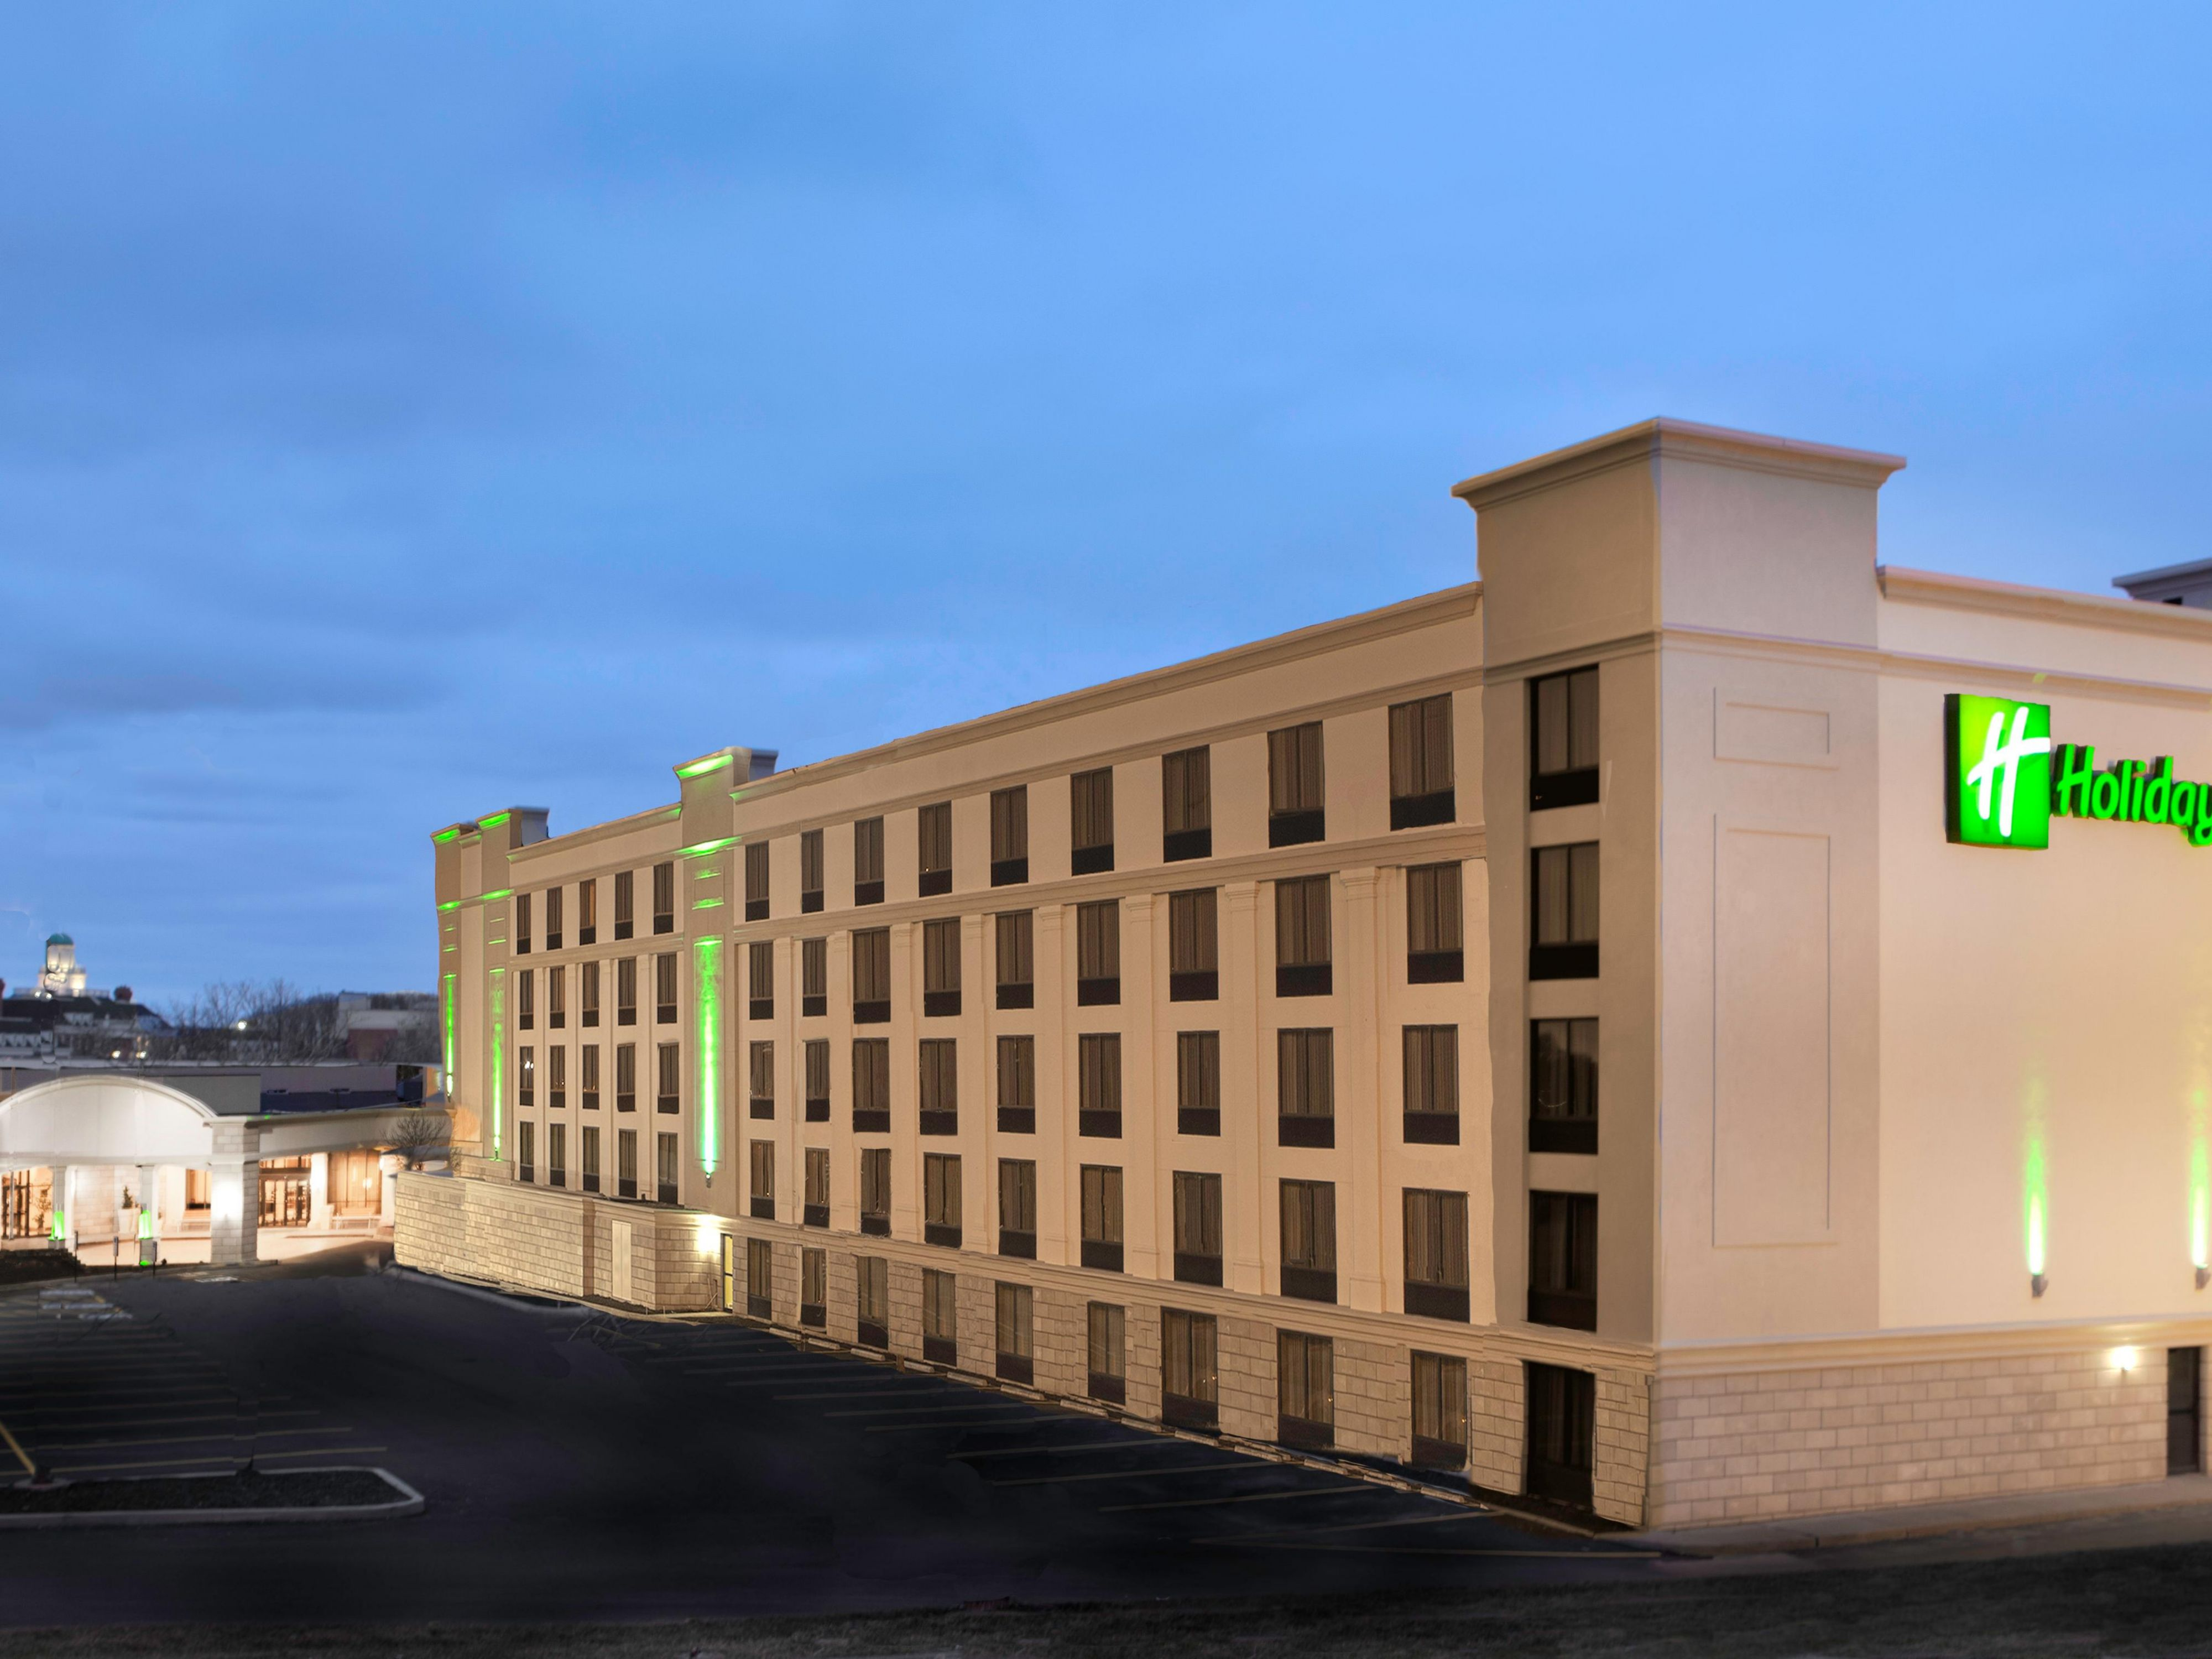 Hotels Near Cle Airport